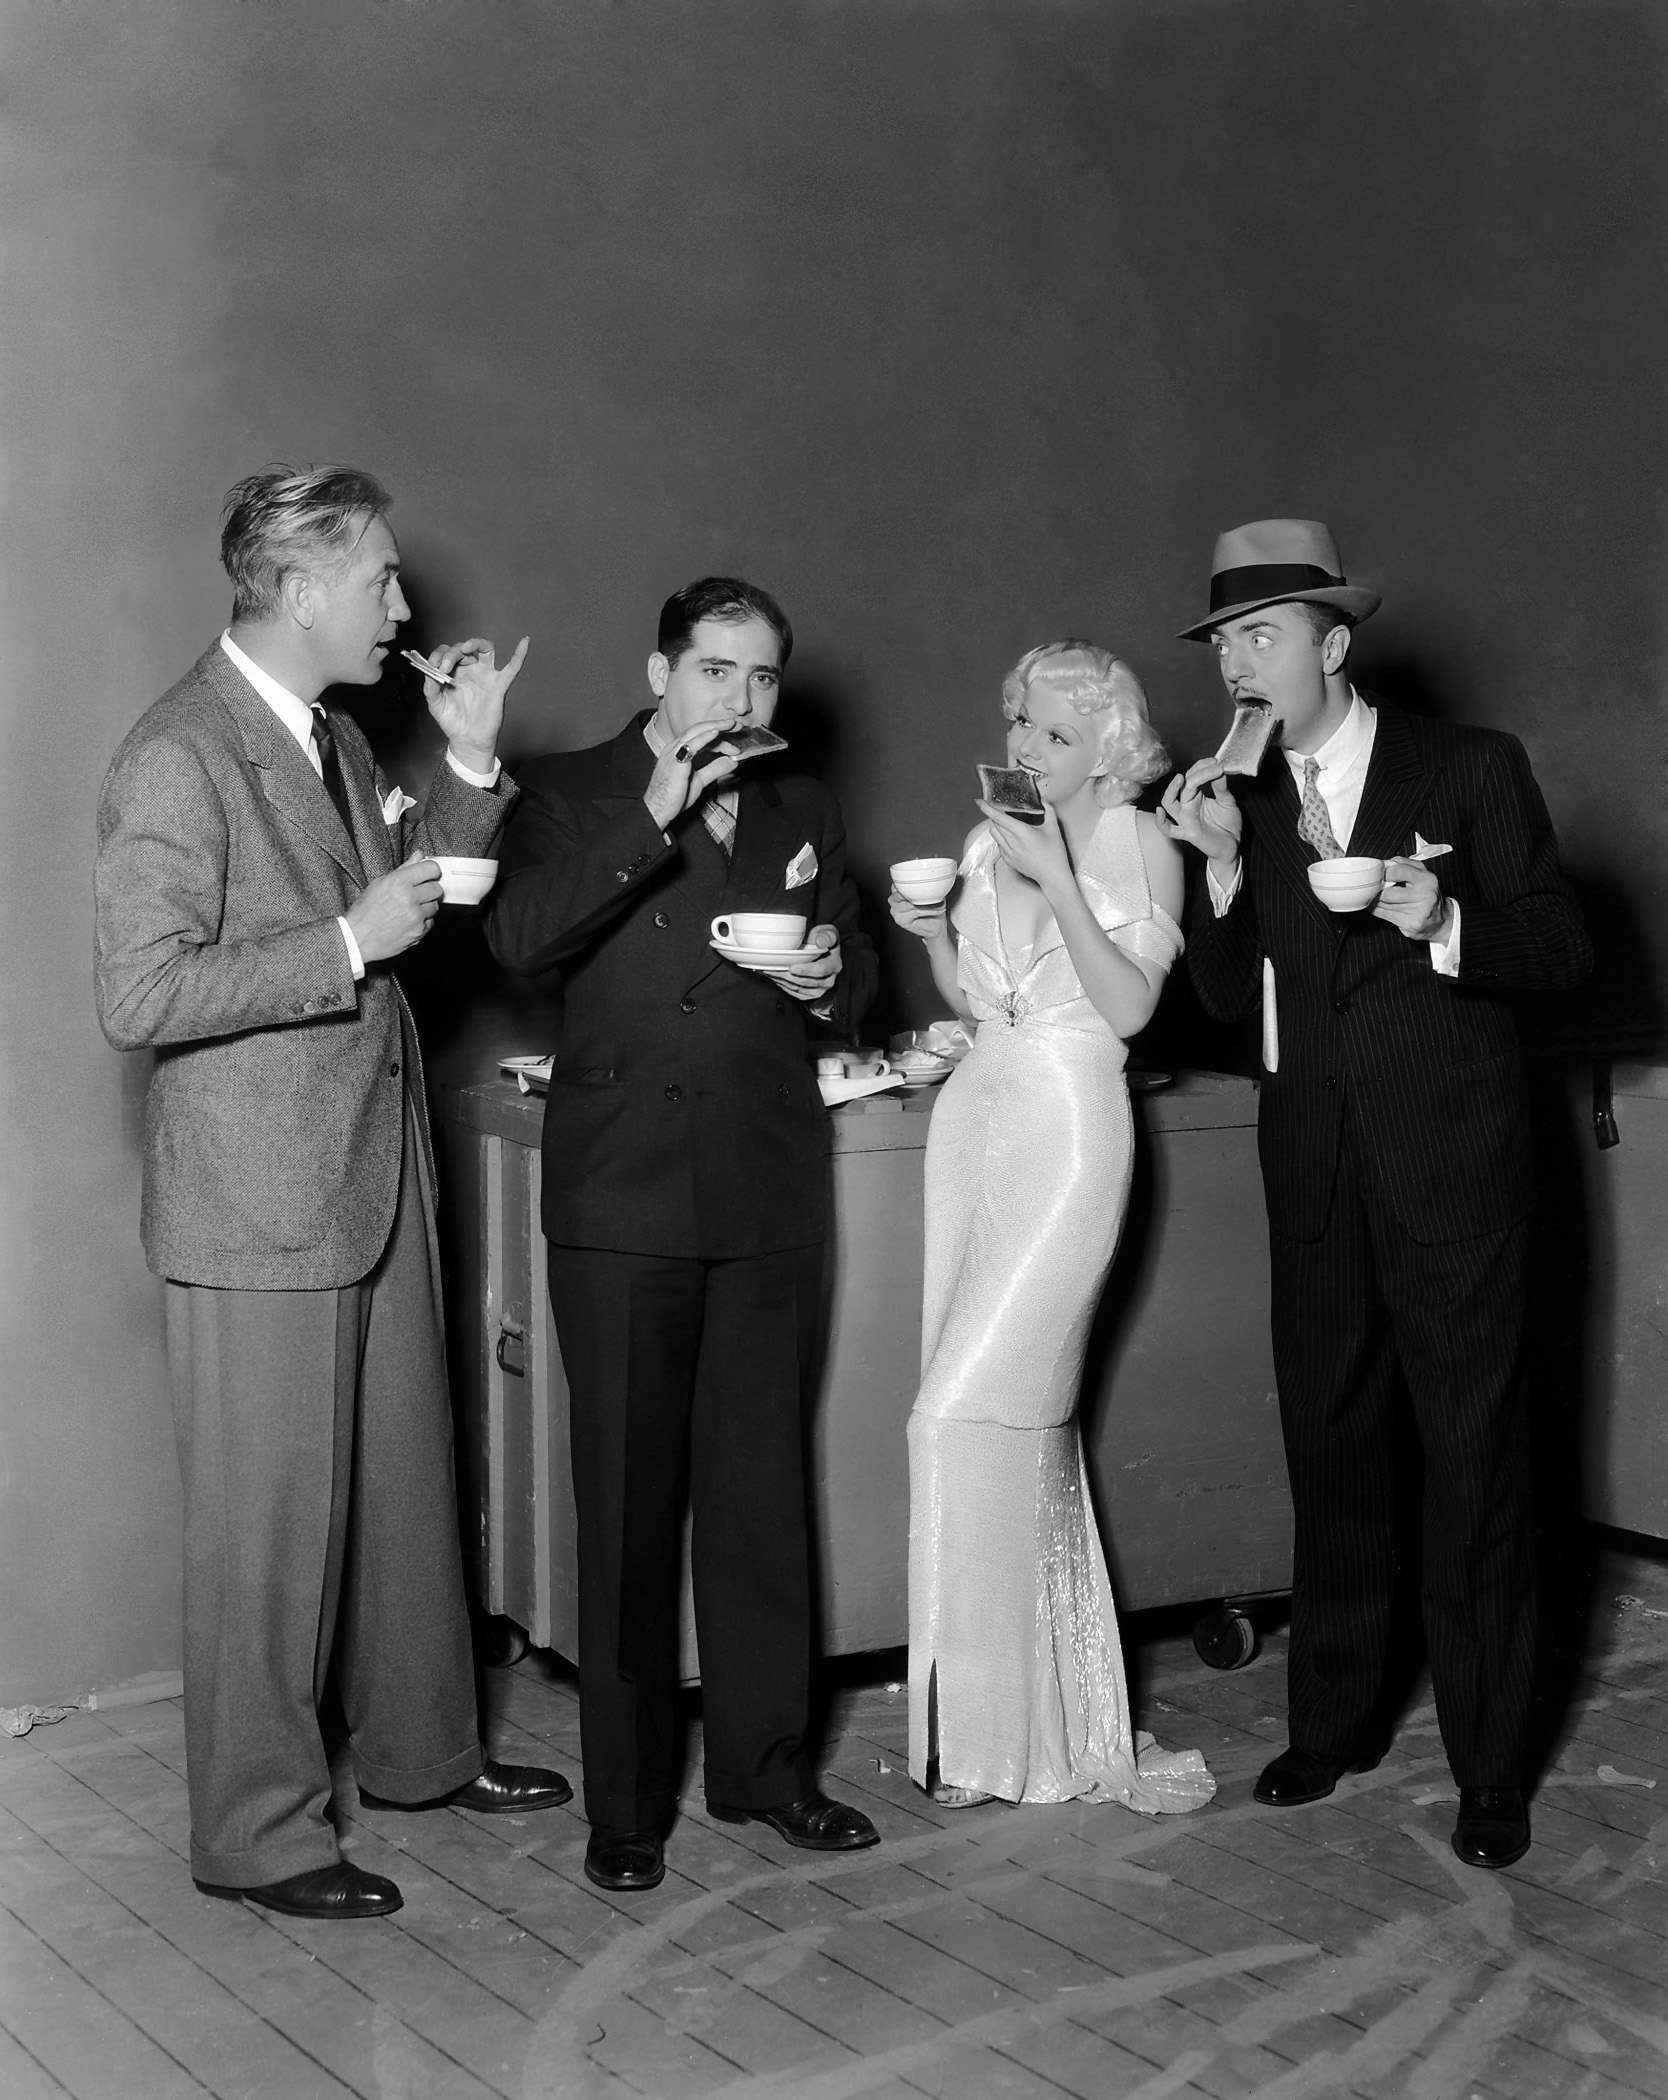 Jean Harlow in Reckless With William Powell (R)